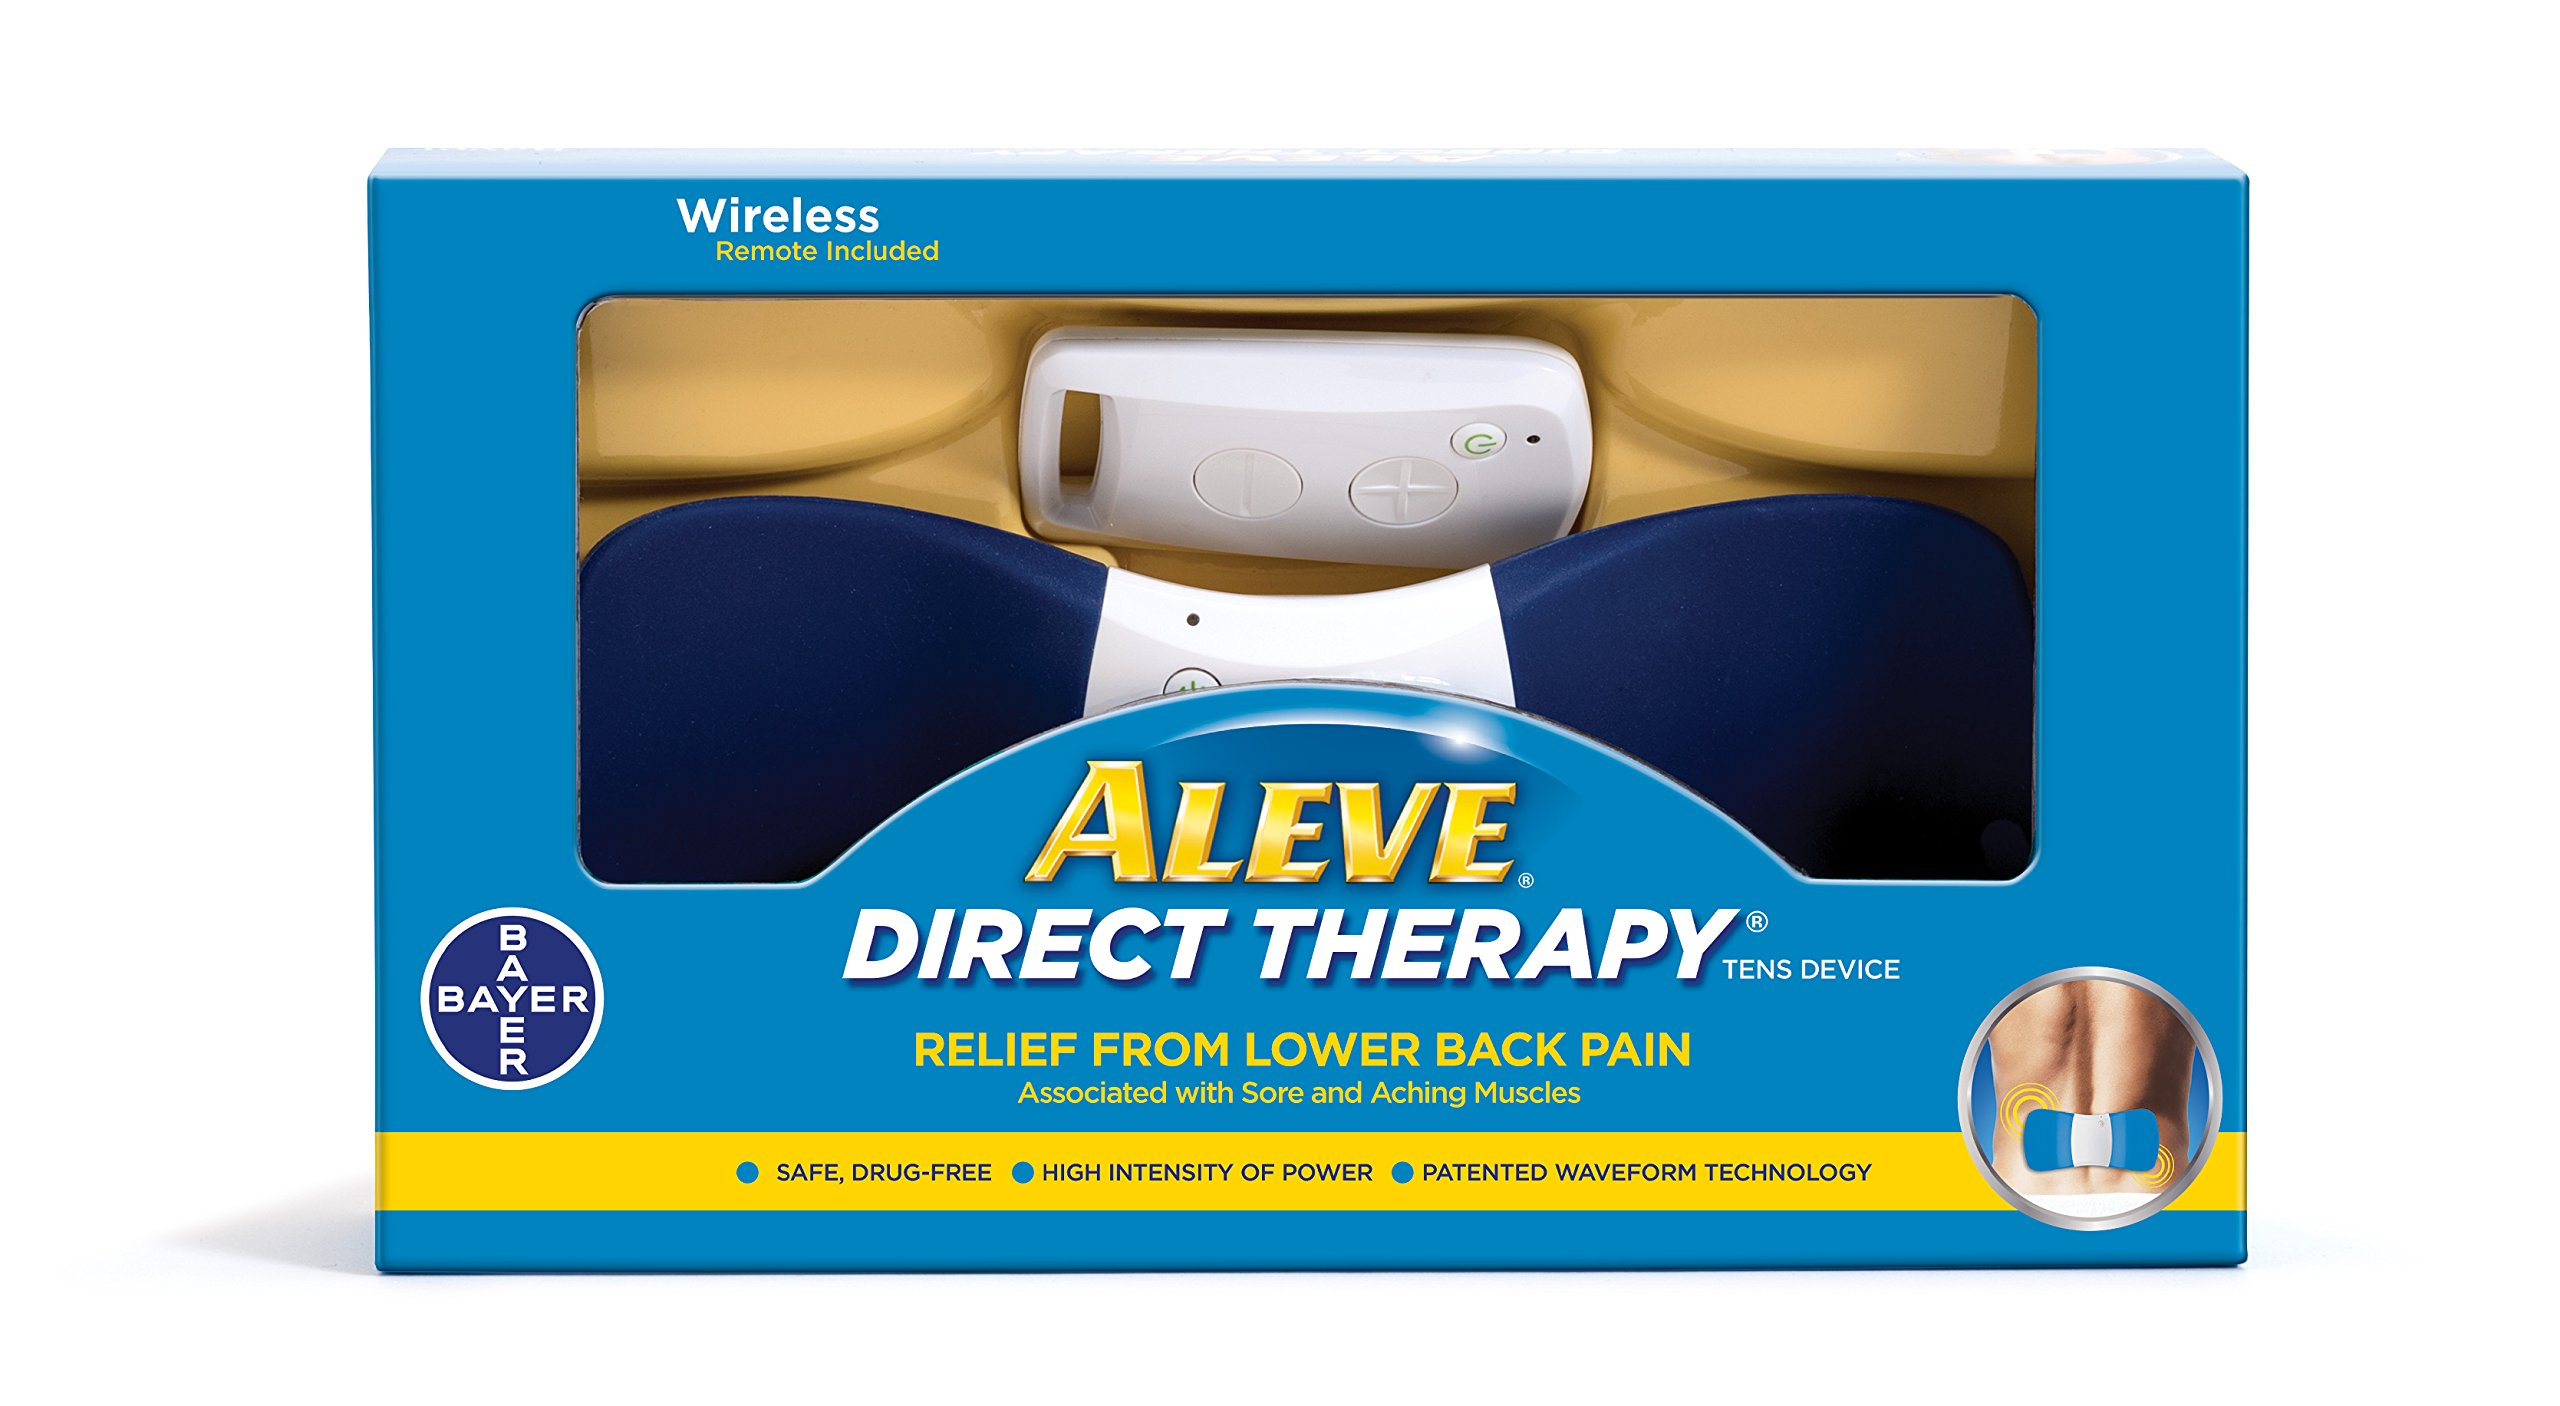 Aleve Direct Therapy - TENS Device by Aleve